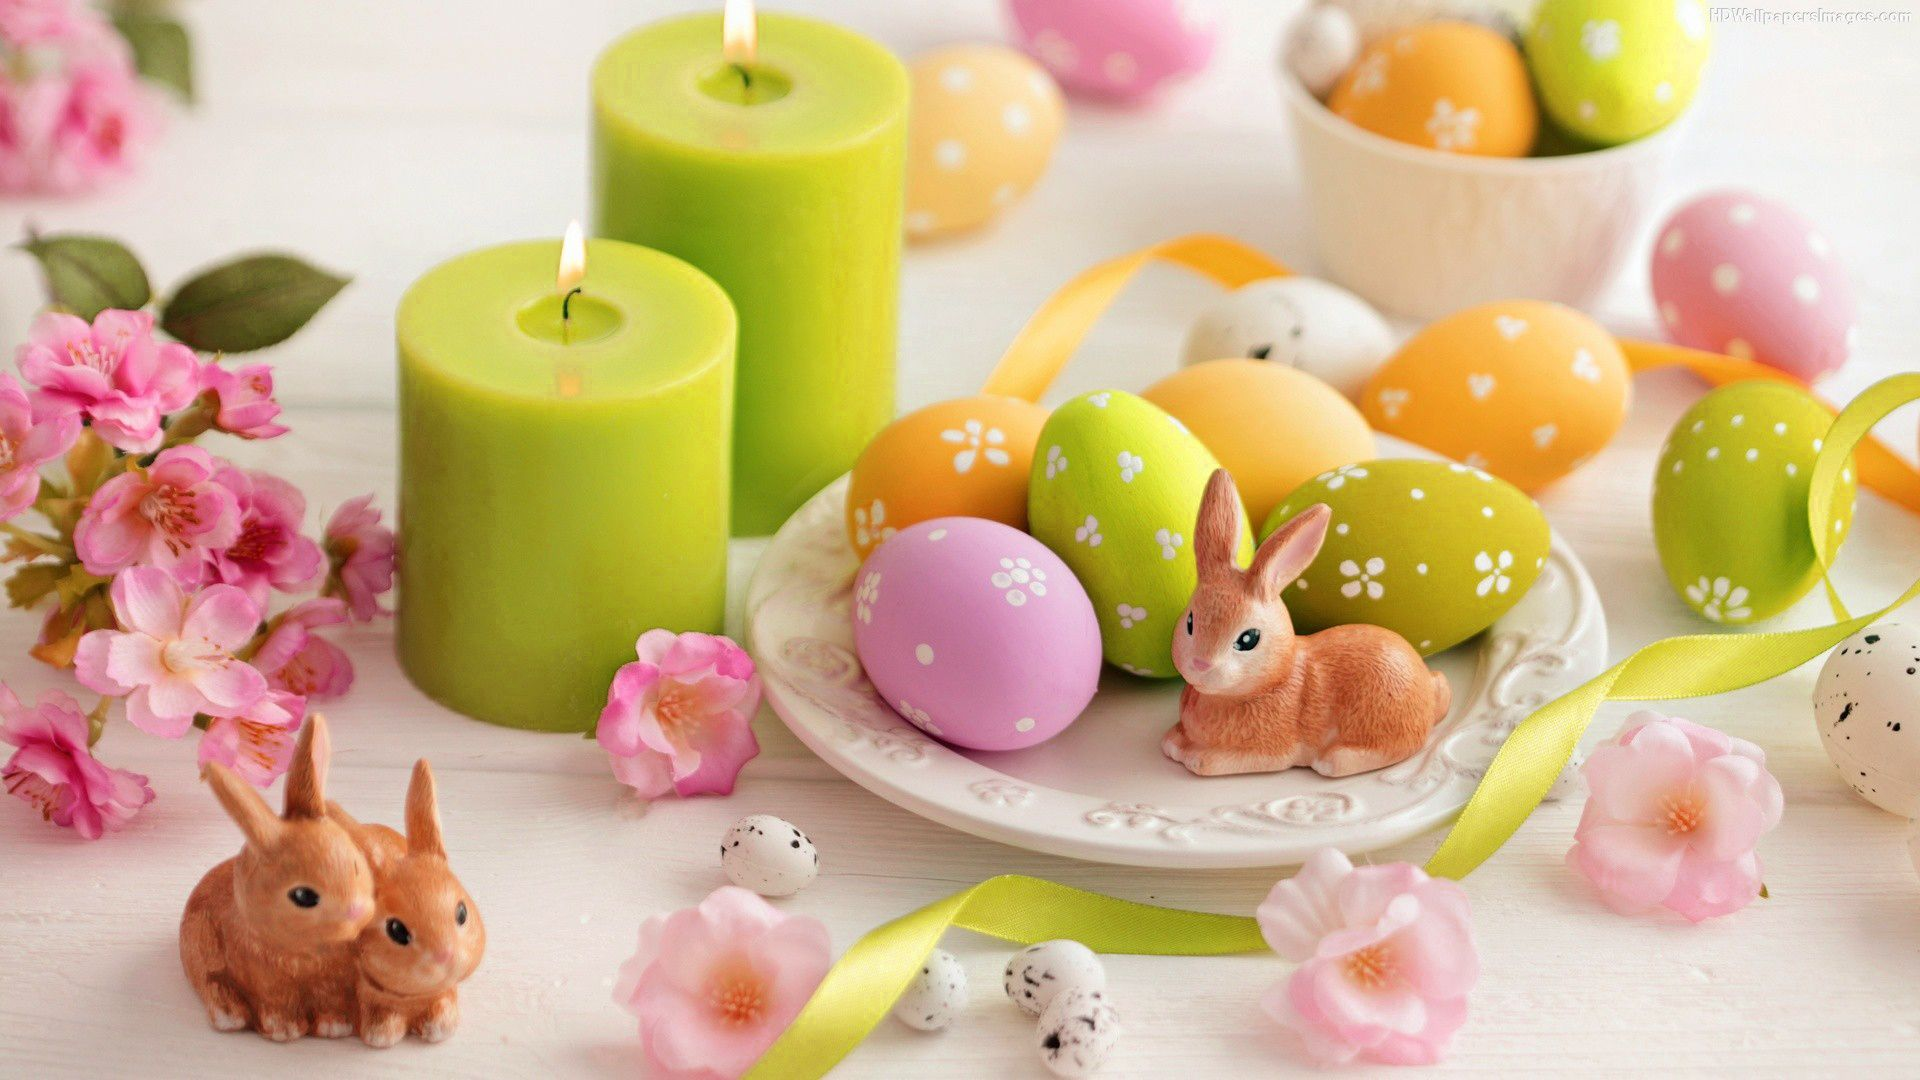 Easter Day Wallpapers 1920x1080